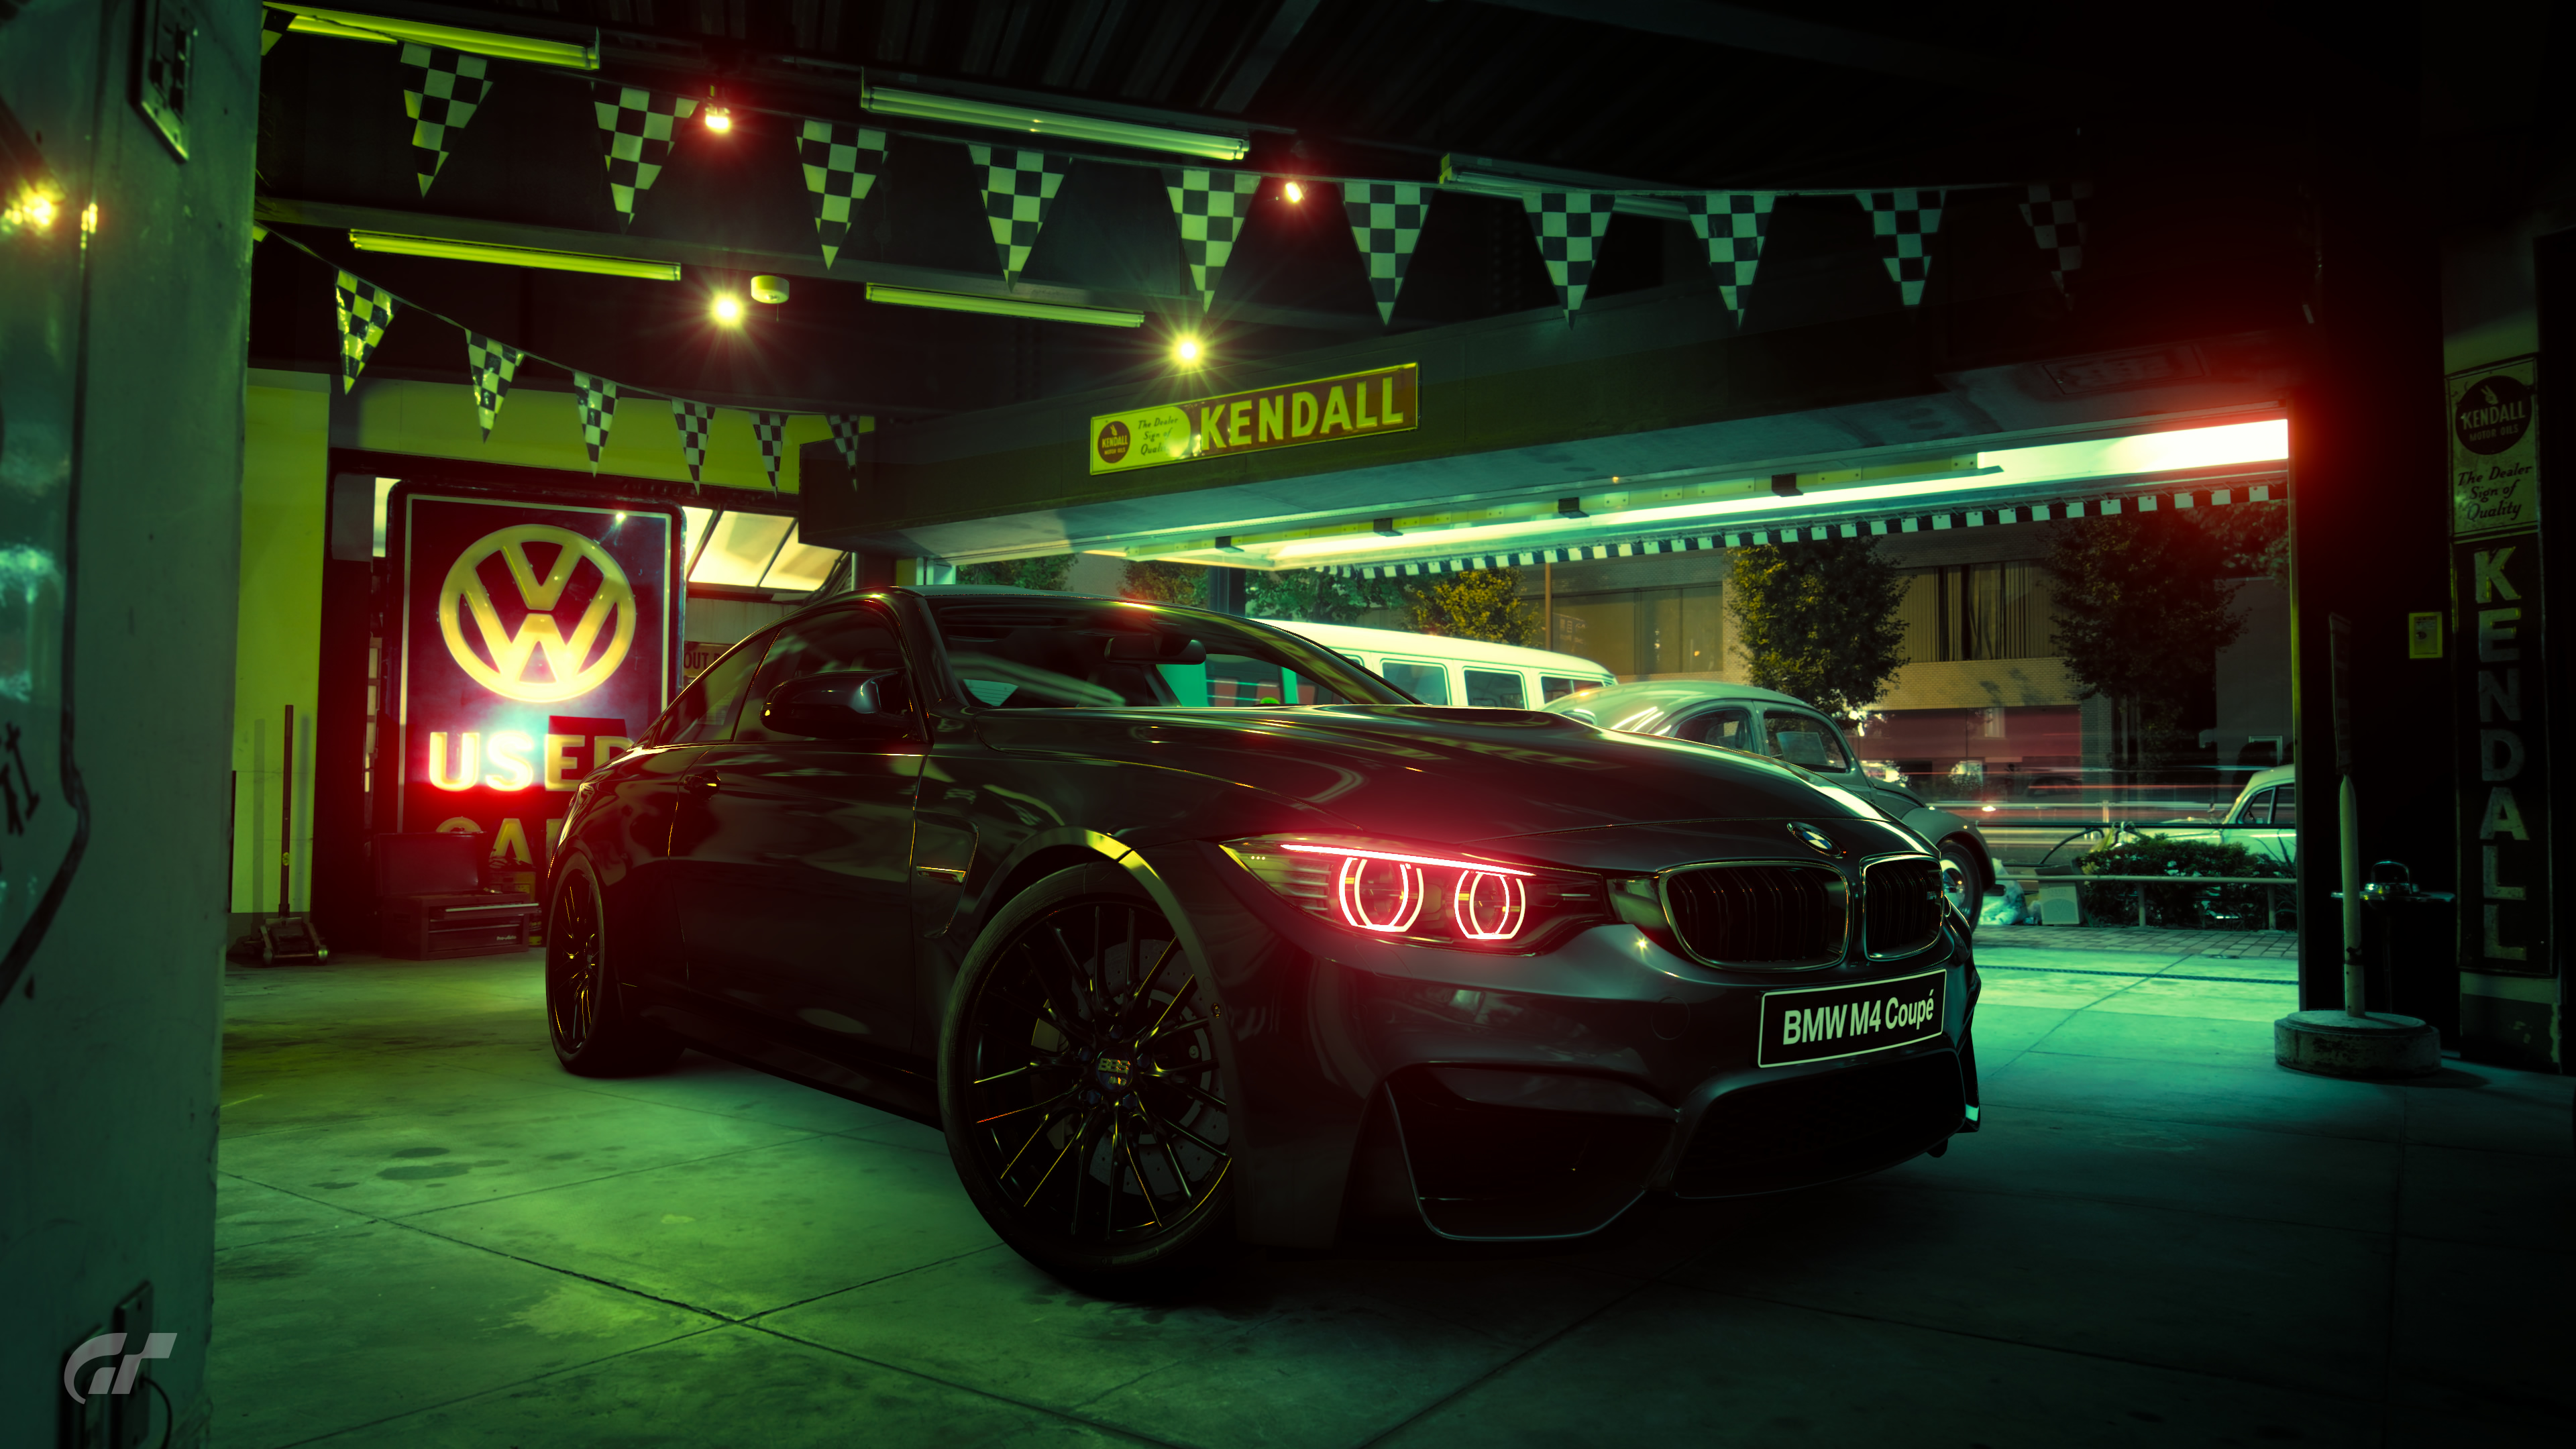 Gran Turismo Bmw M4 Coupe 4k Hd Games 4k Wallpapers Images Backgrounds Photos And Pictures